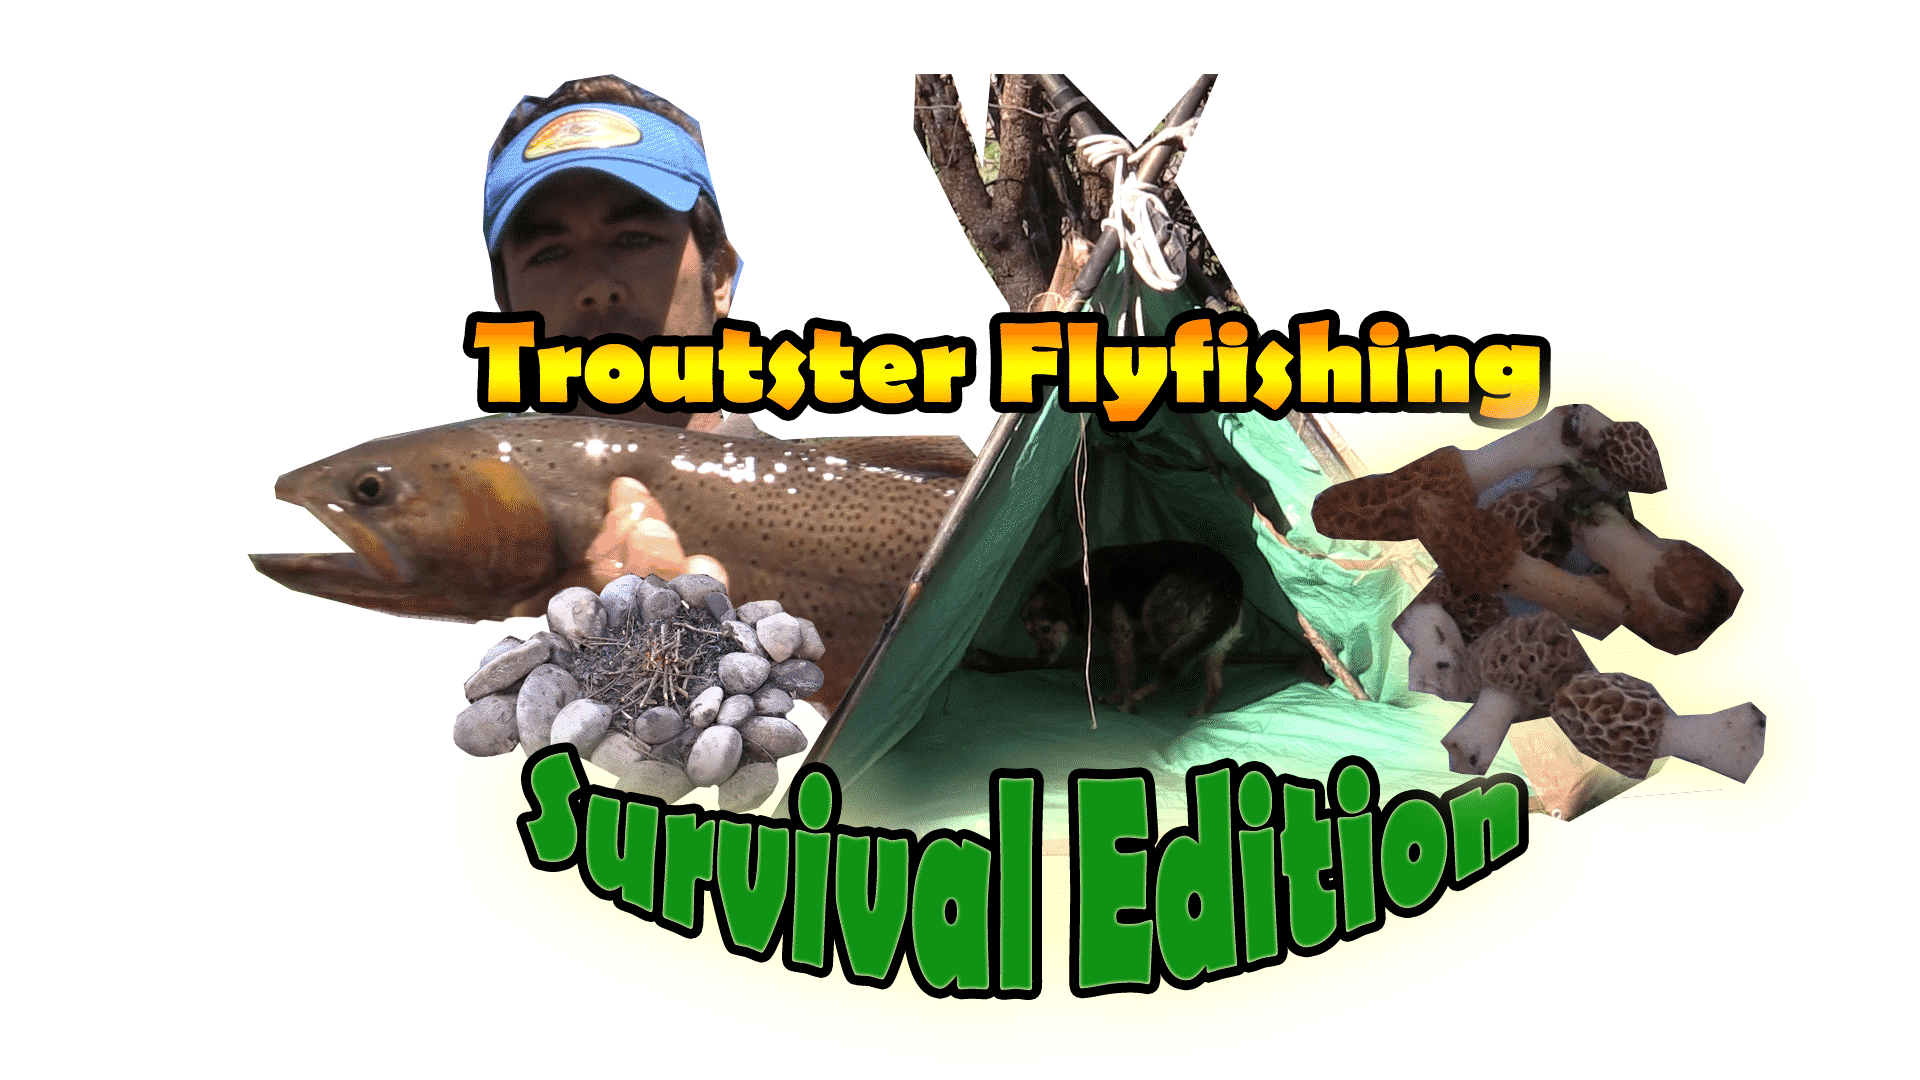 Troutster fly fishing survival float trip through the wilderness